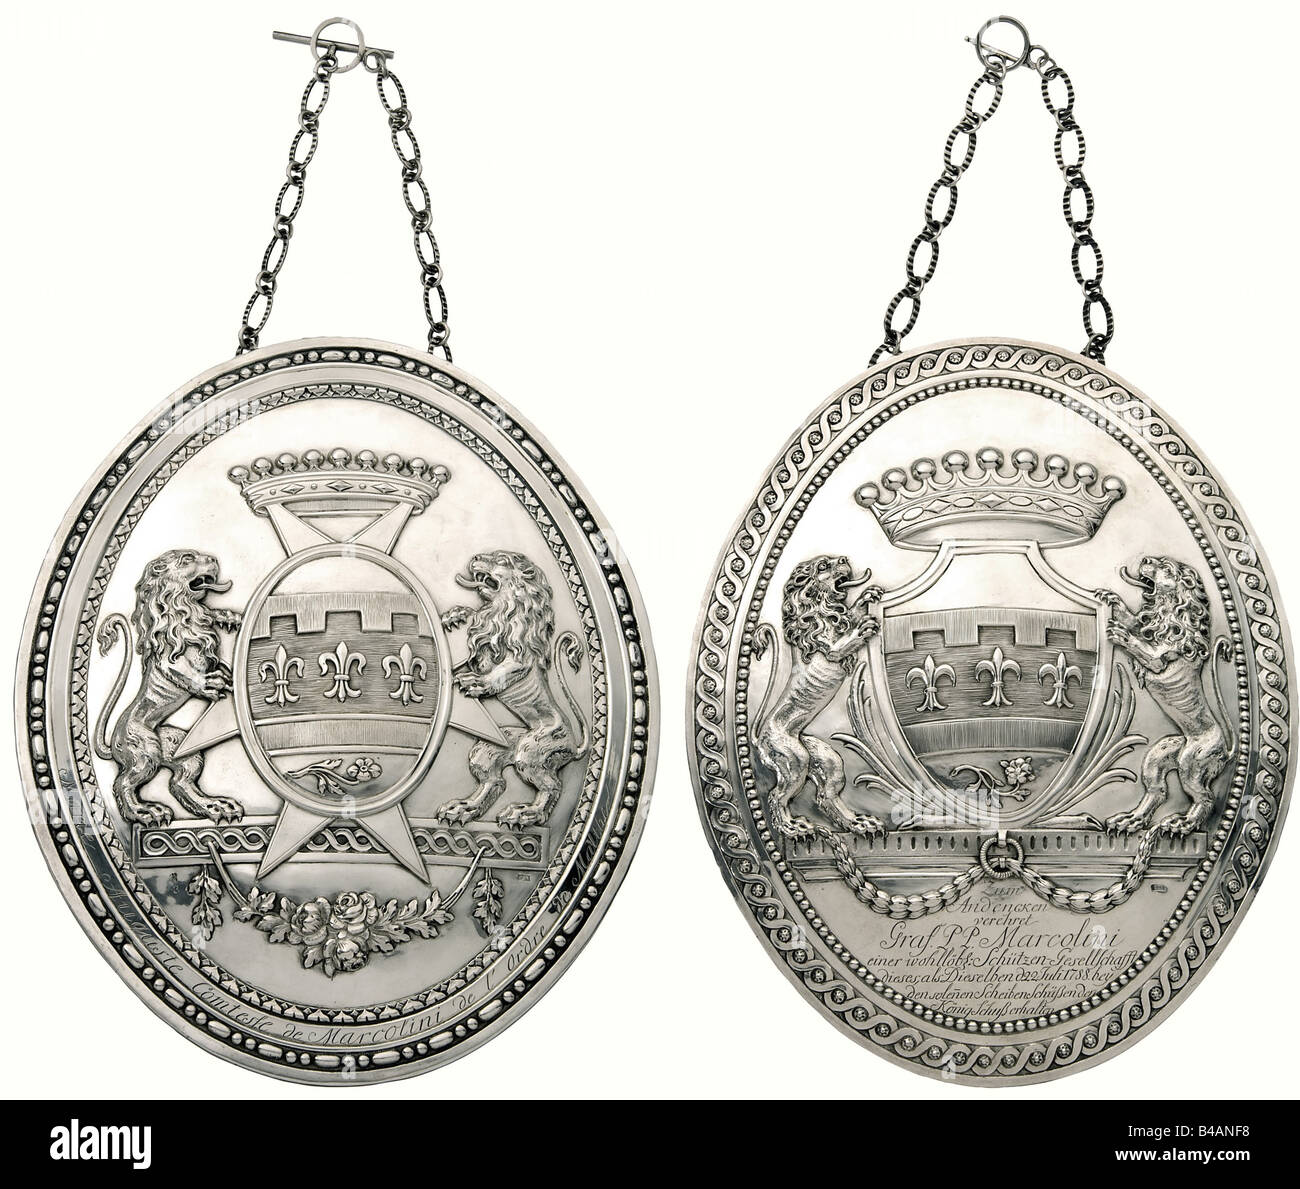 Count Camillo Marcolini and Countess Marie Auguste Marcolini - two silver plaques bearing coats of arms, Friedrich - Stock Image